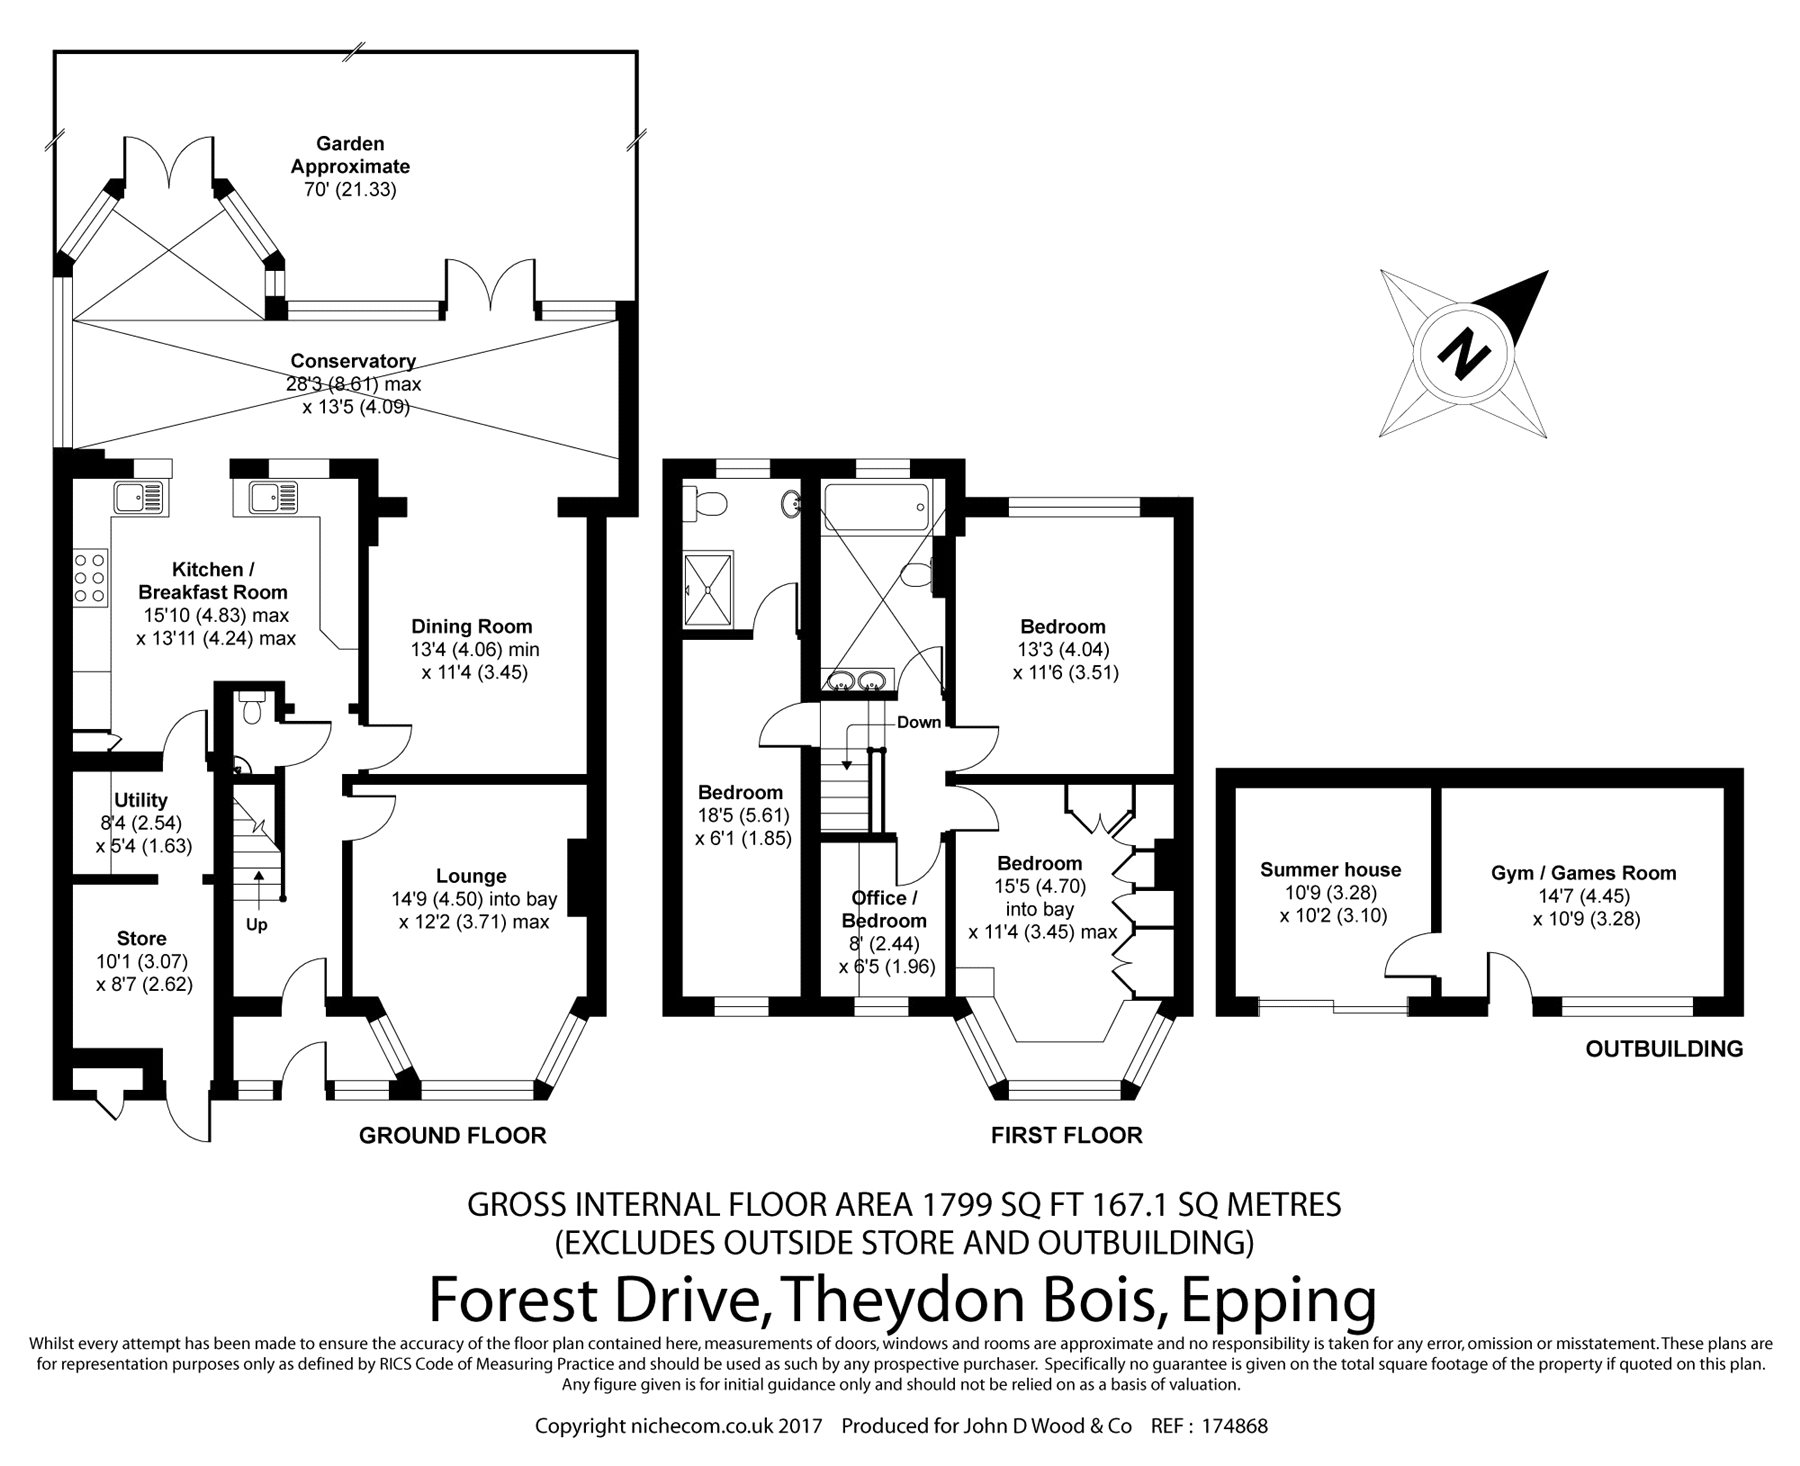 4 bed semi detached house for sale in forest drive theydon bois epping essex cm16 43634642. Black Bedroom Furniture Sets. Home Design Ideas